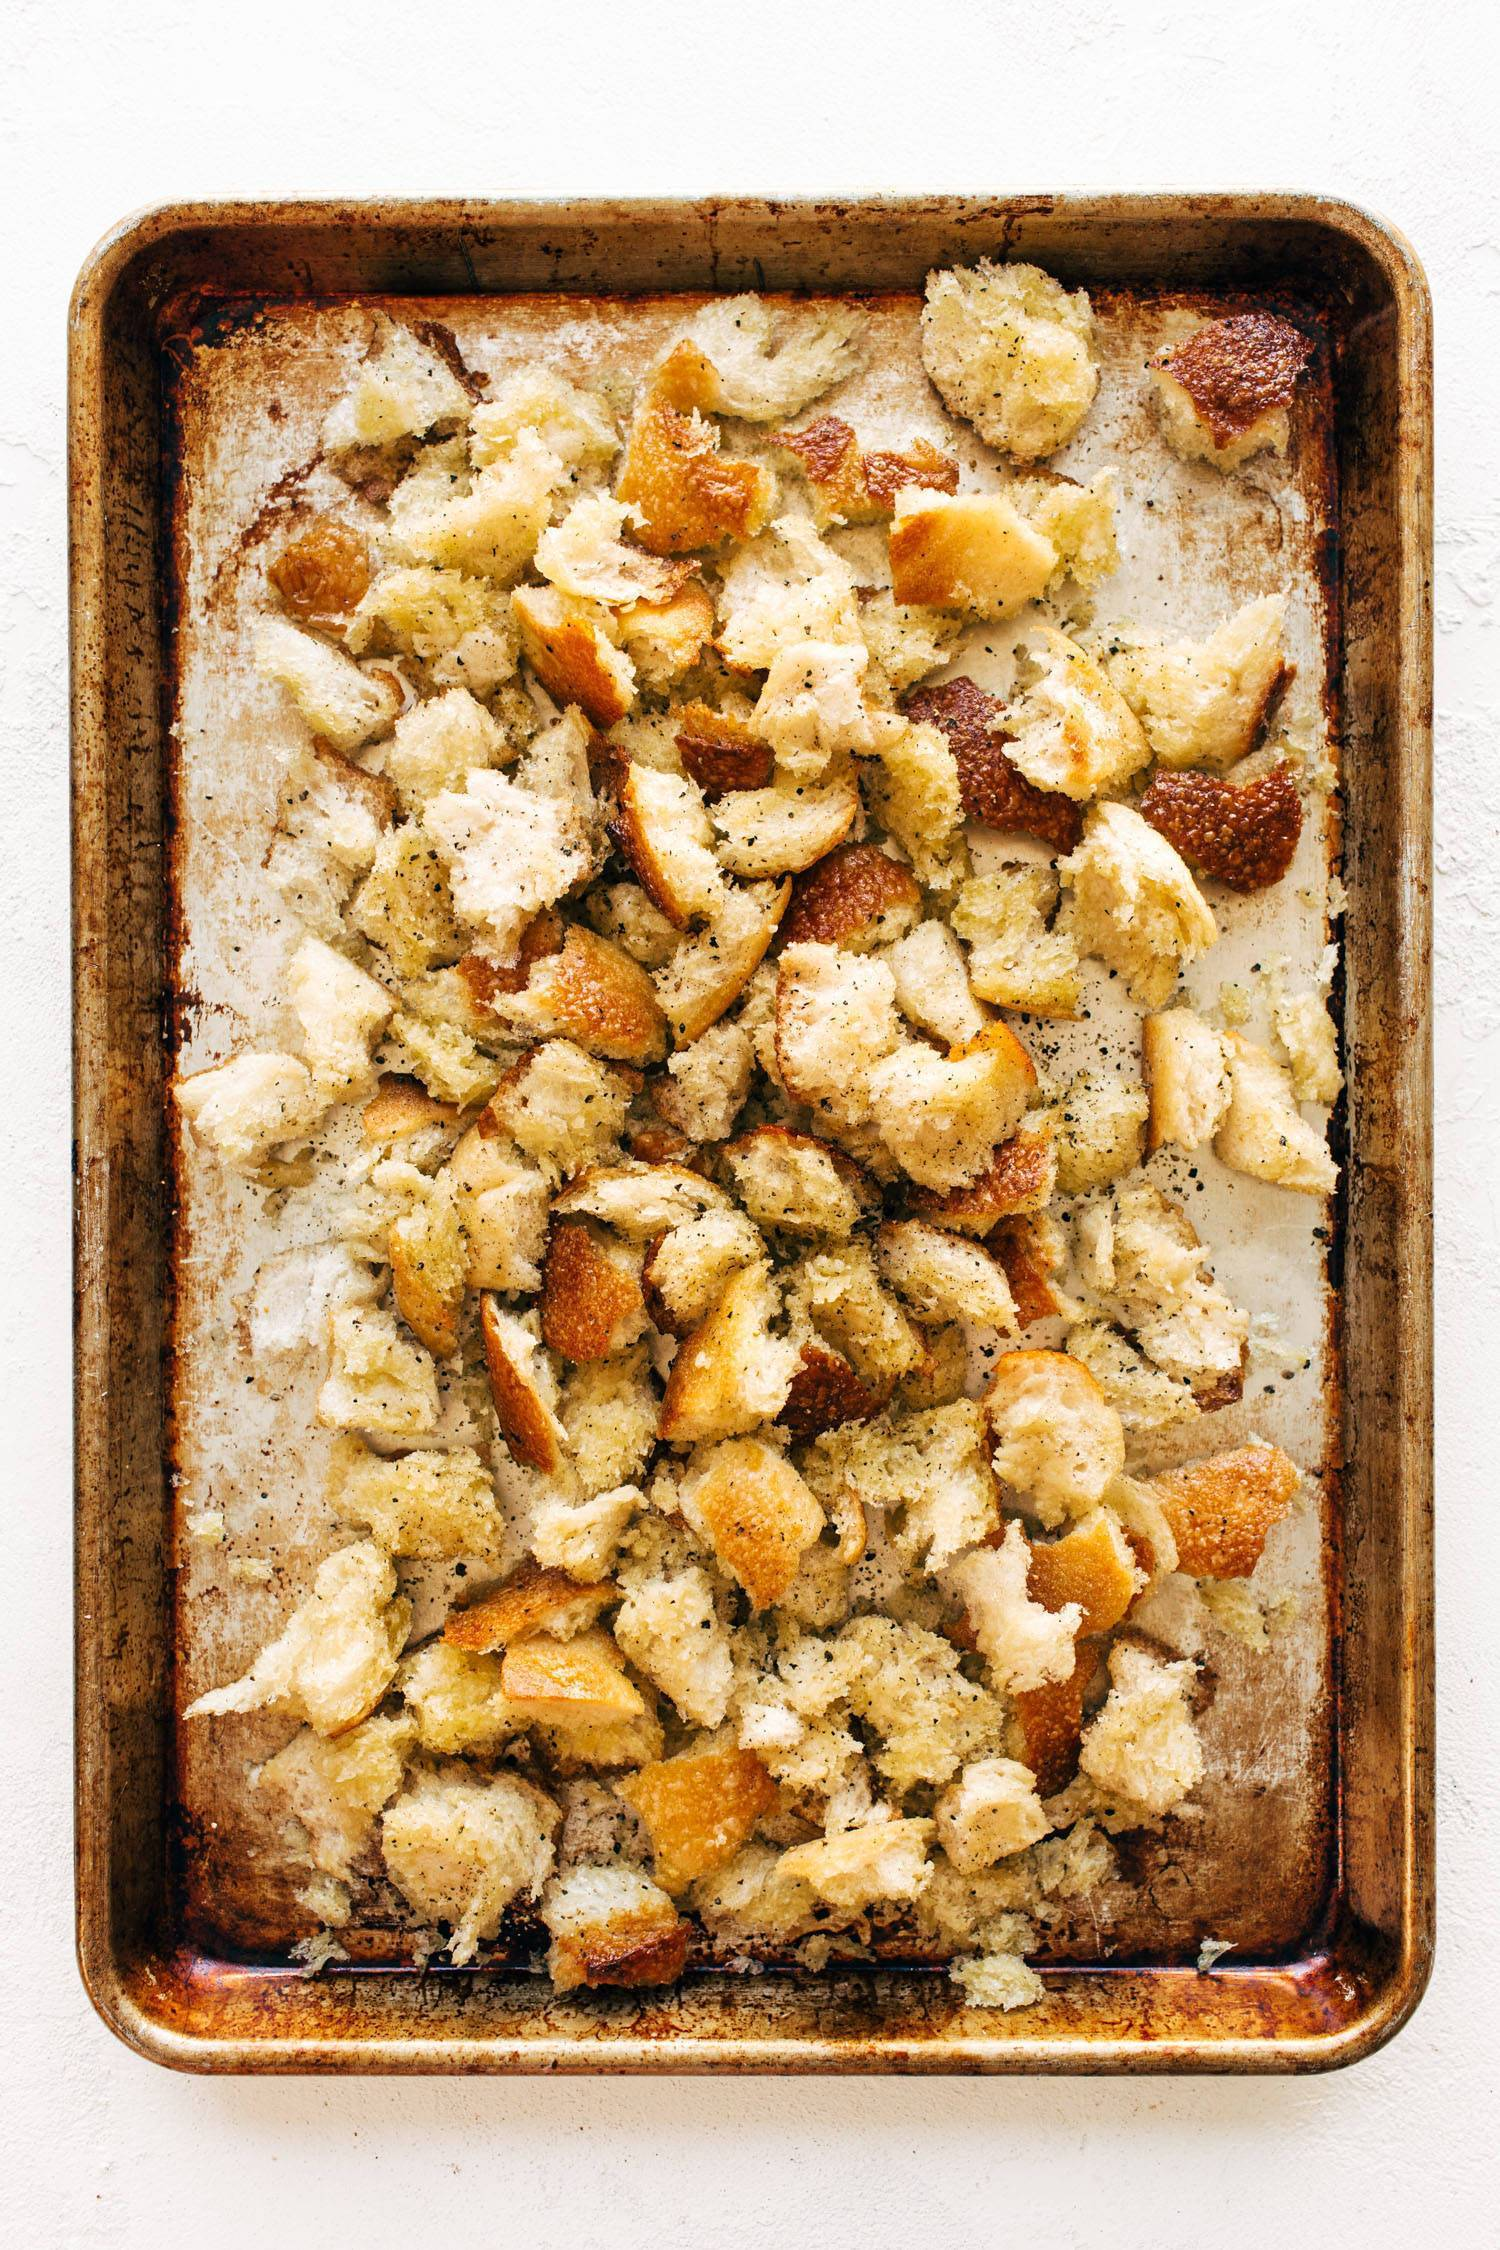 Peppery torn croutons on a sheet pan.